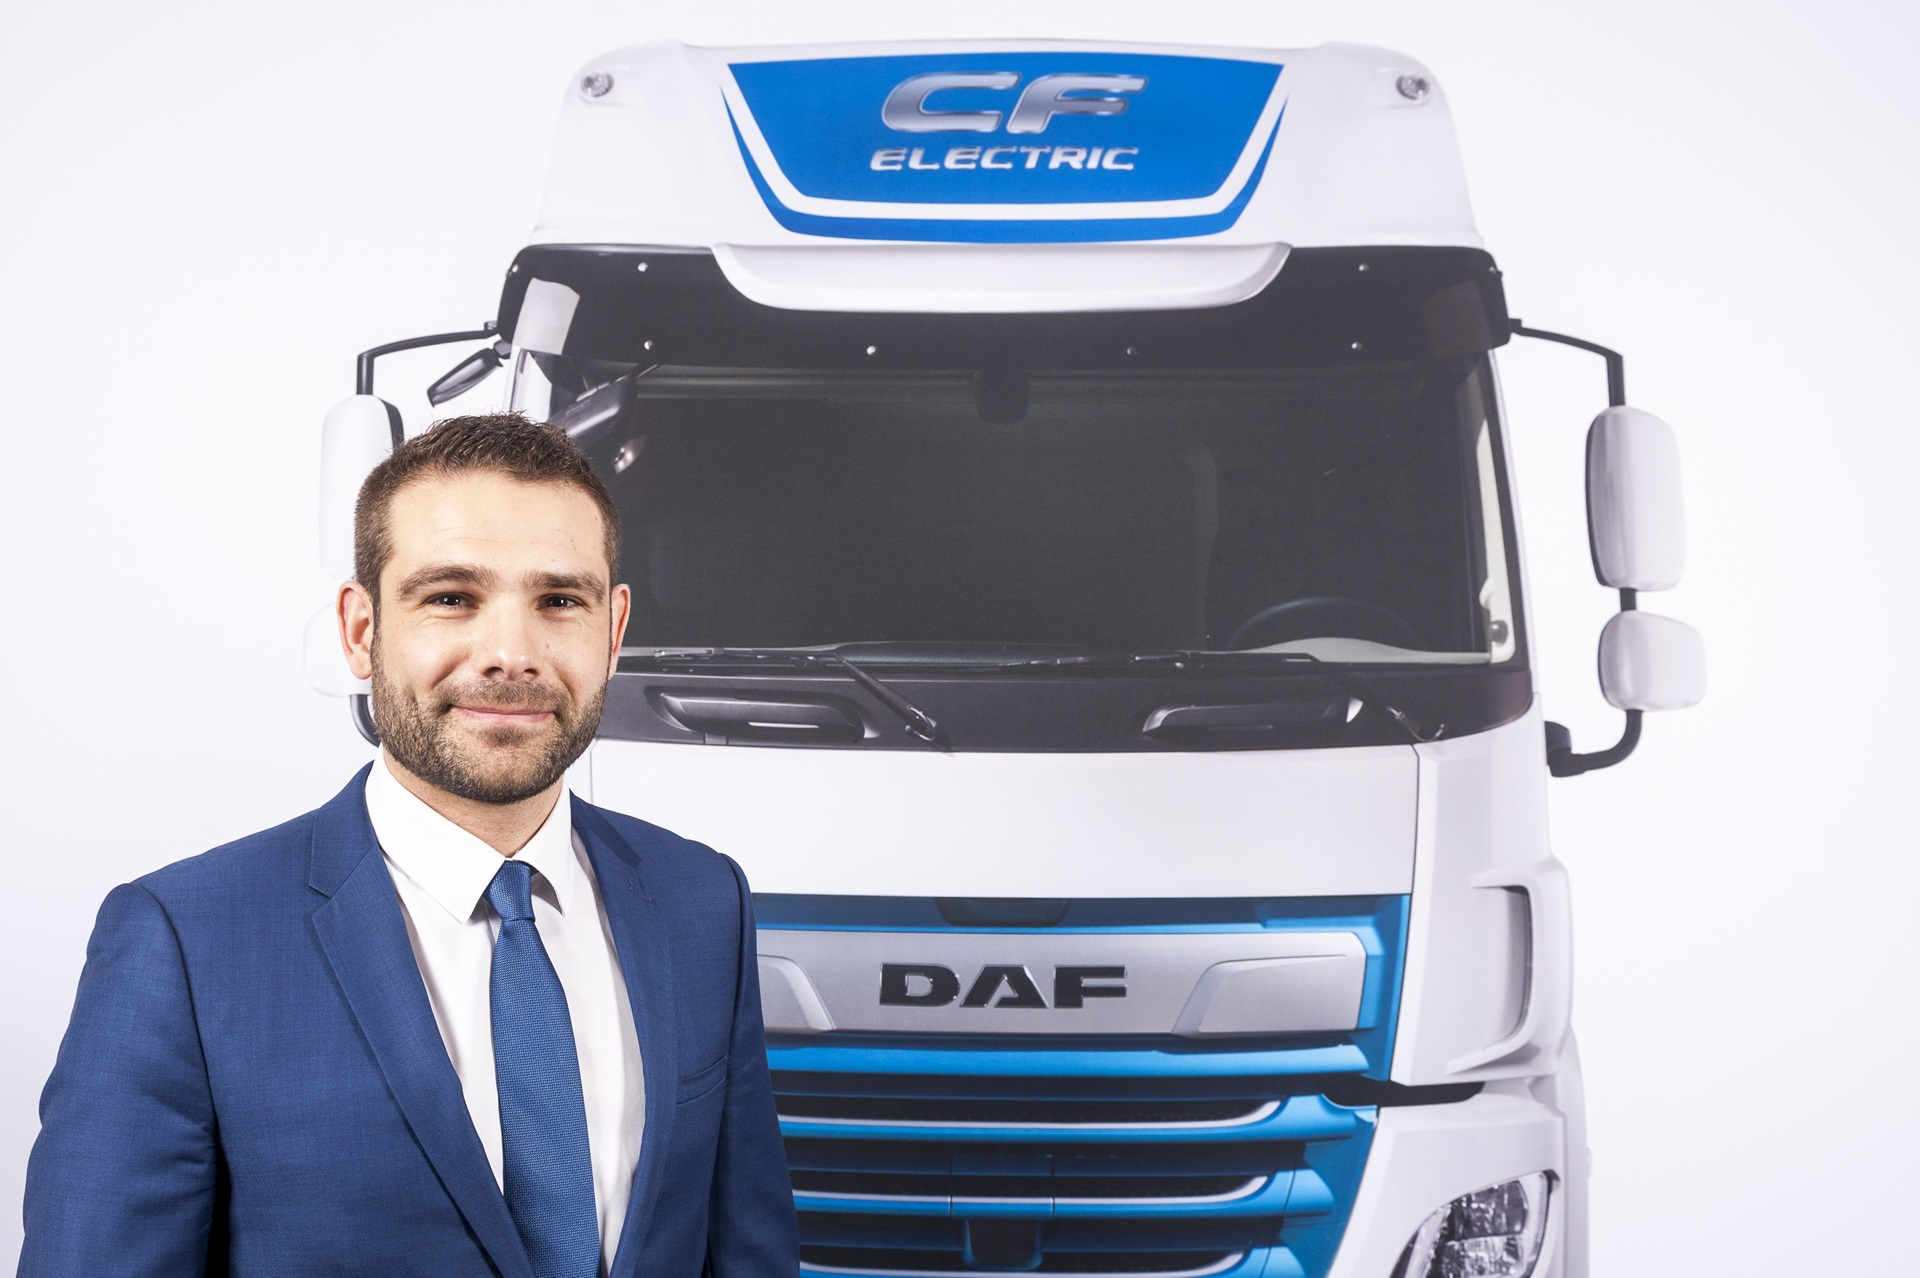 Francis-Roncin-DAF-Trucks-France